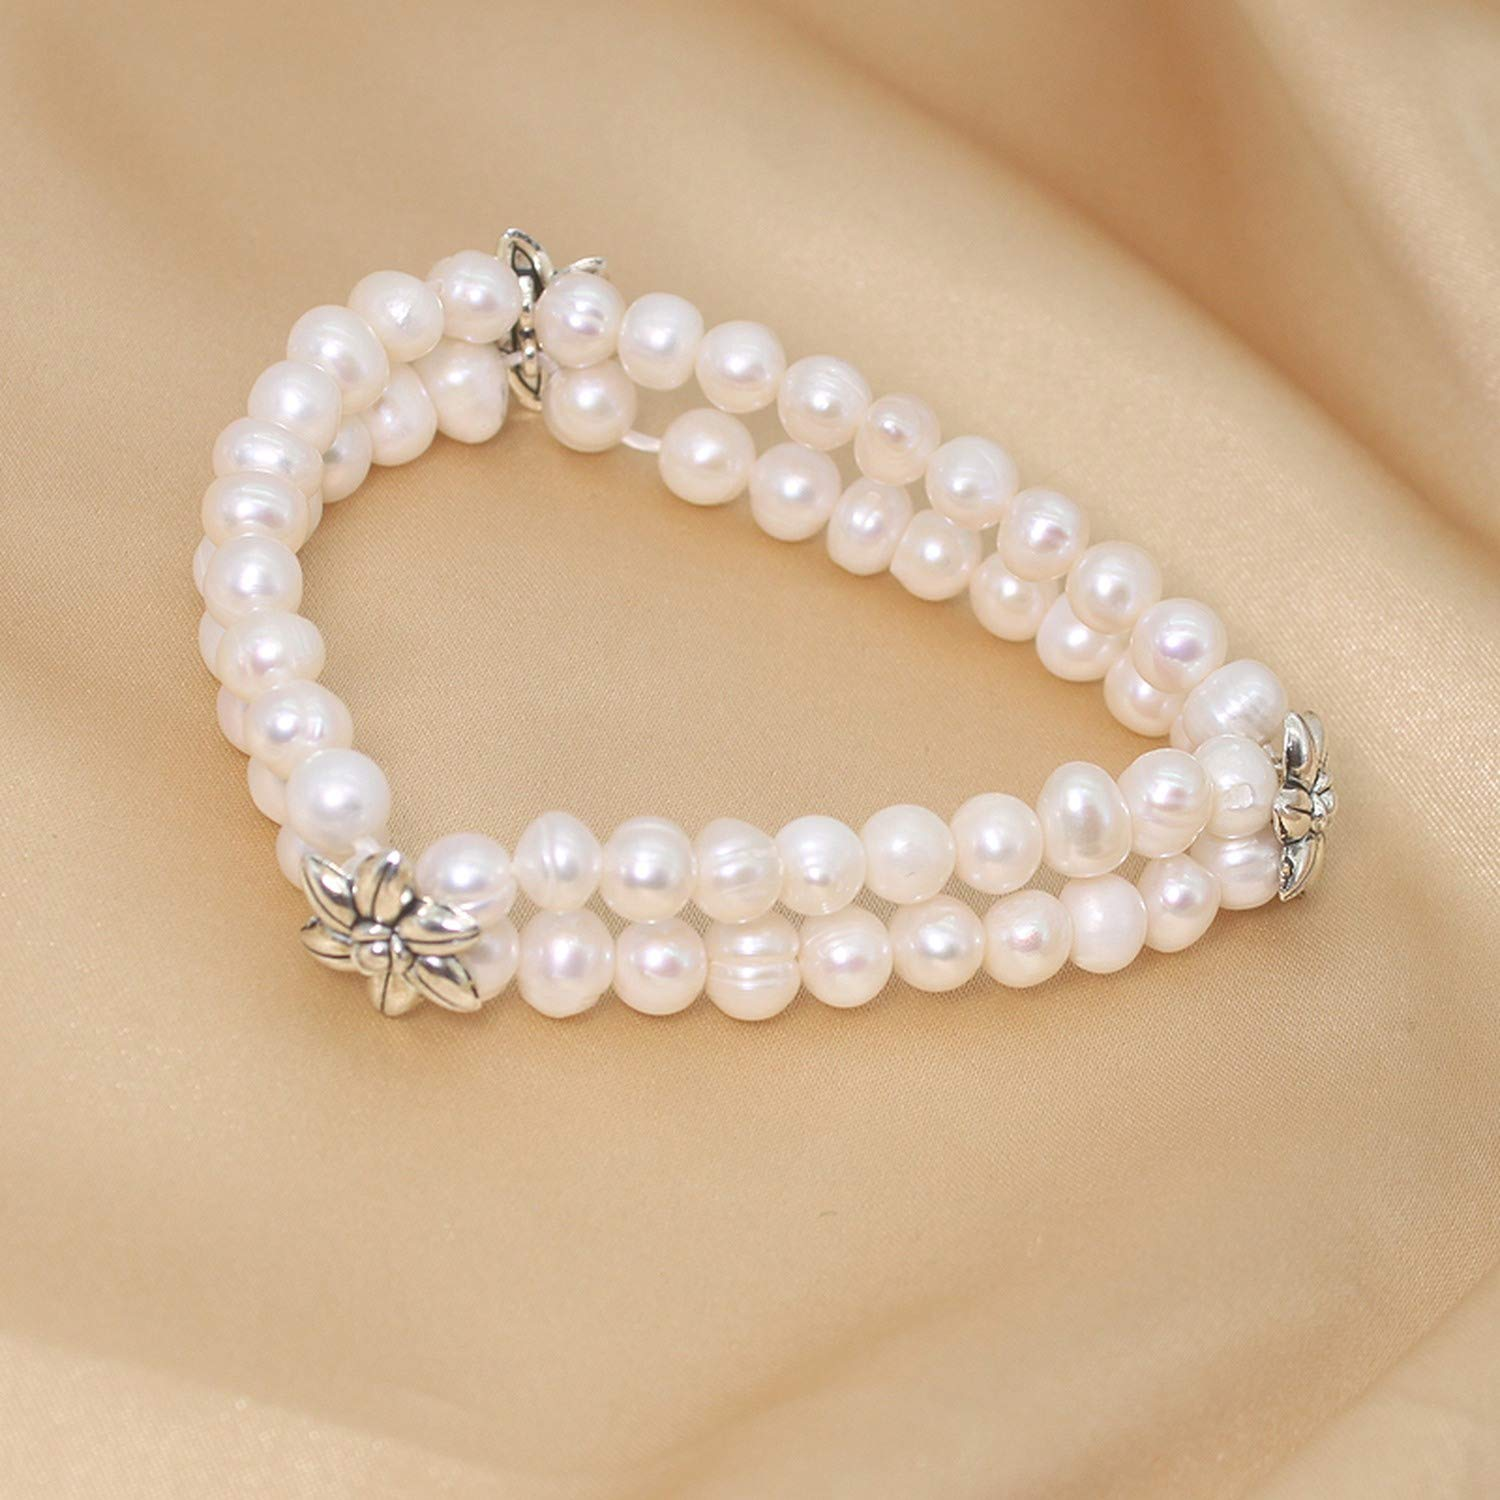 Aplause-Y Lotus White Freshwater Pearls Bangle Real Natural Pearl Bracelet for Women Wedding Fine Jewelry Party Gift